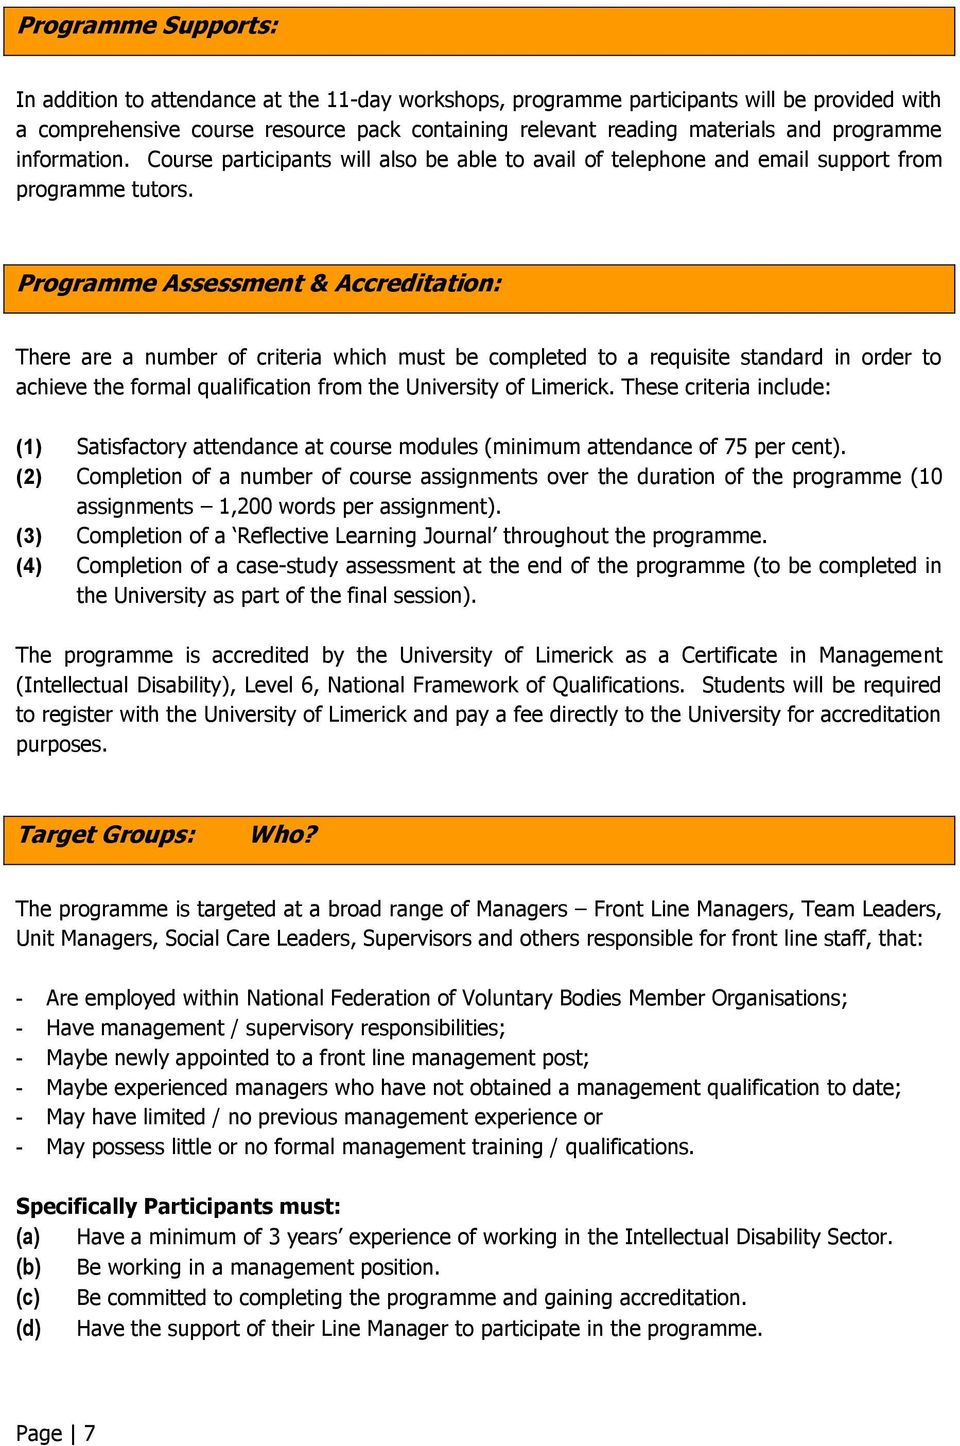 Programme Assessment & Accreditation: There are a number of criteria which must be completed to a requisite standard in order to achieve the formal qualification from the University of Limerick.